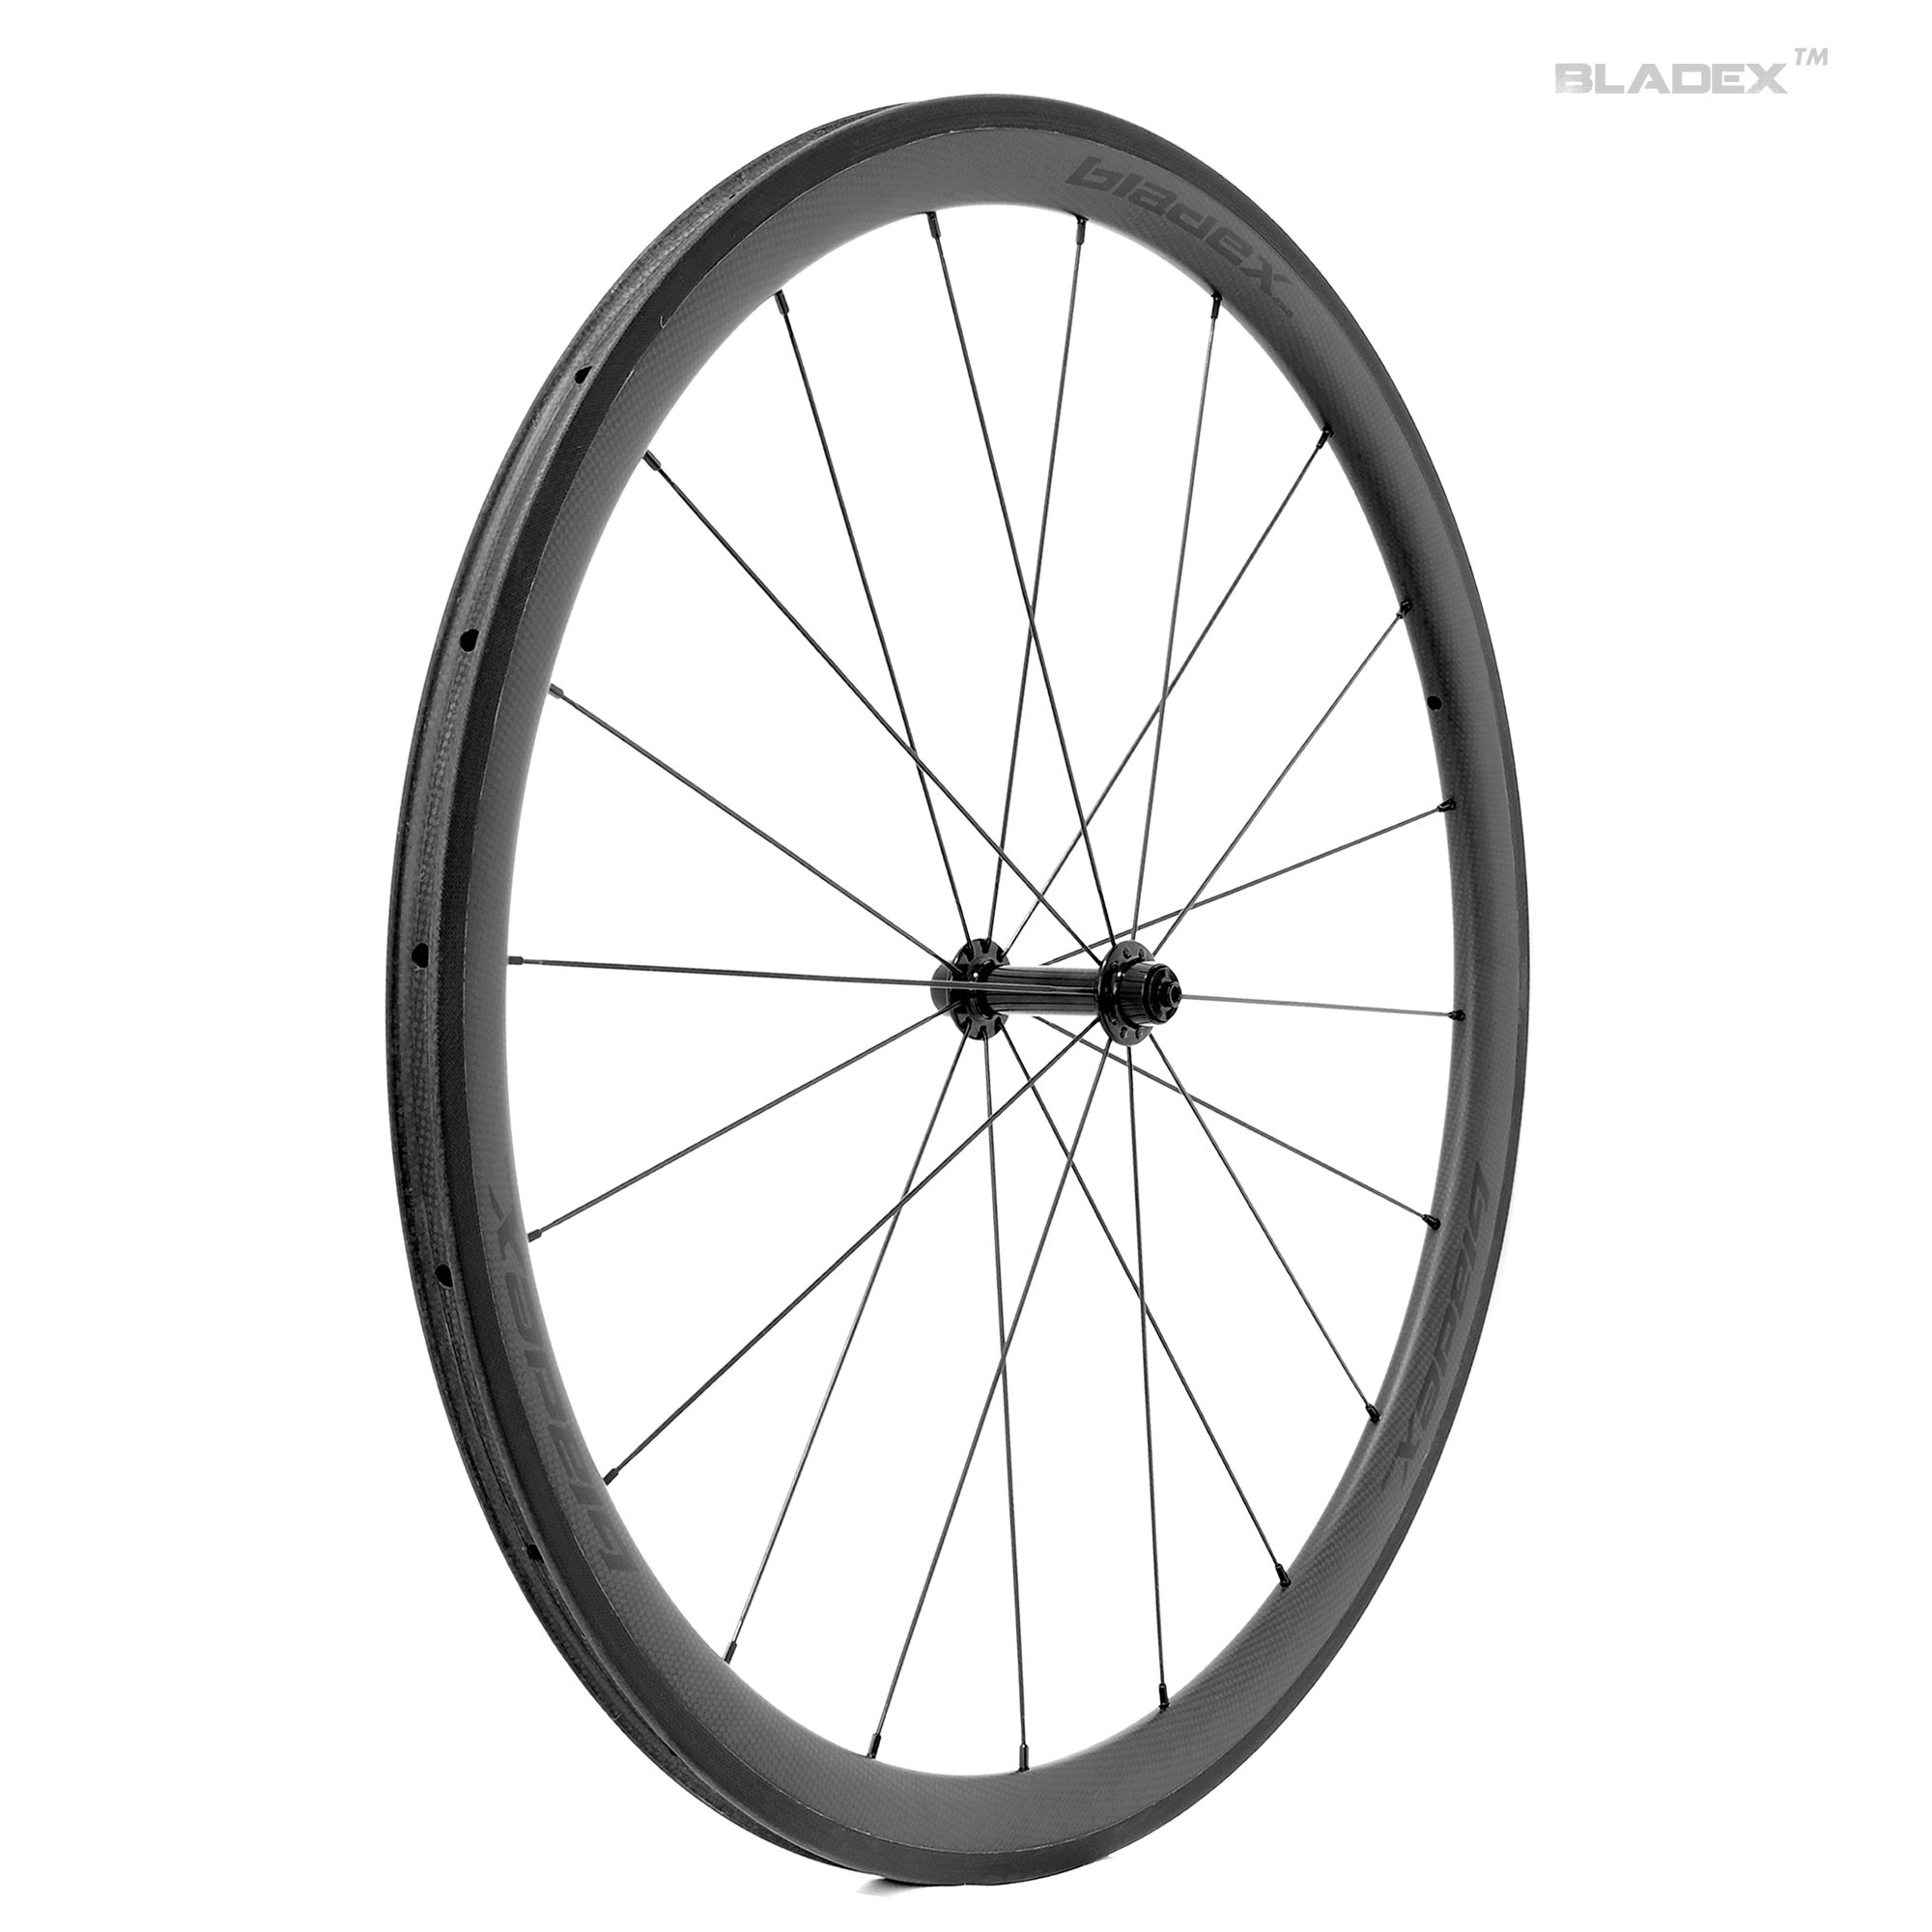 Pro Road Bike 38mm Carbon Wheels Basalt Braking Surface Ceramic